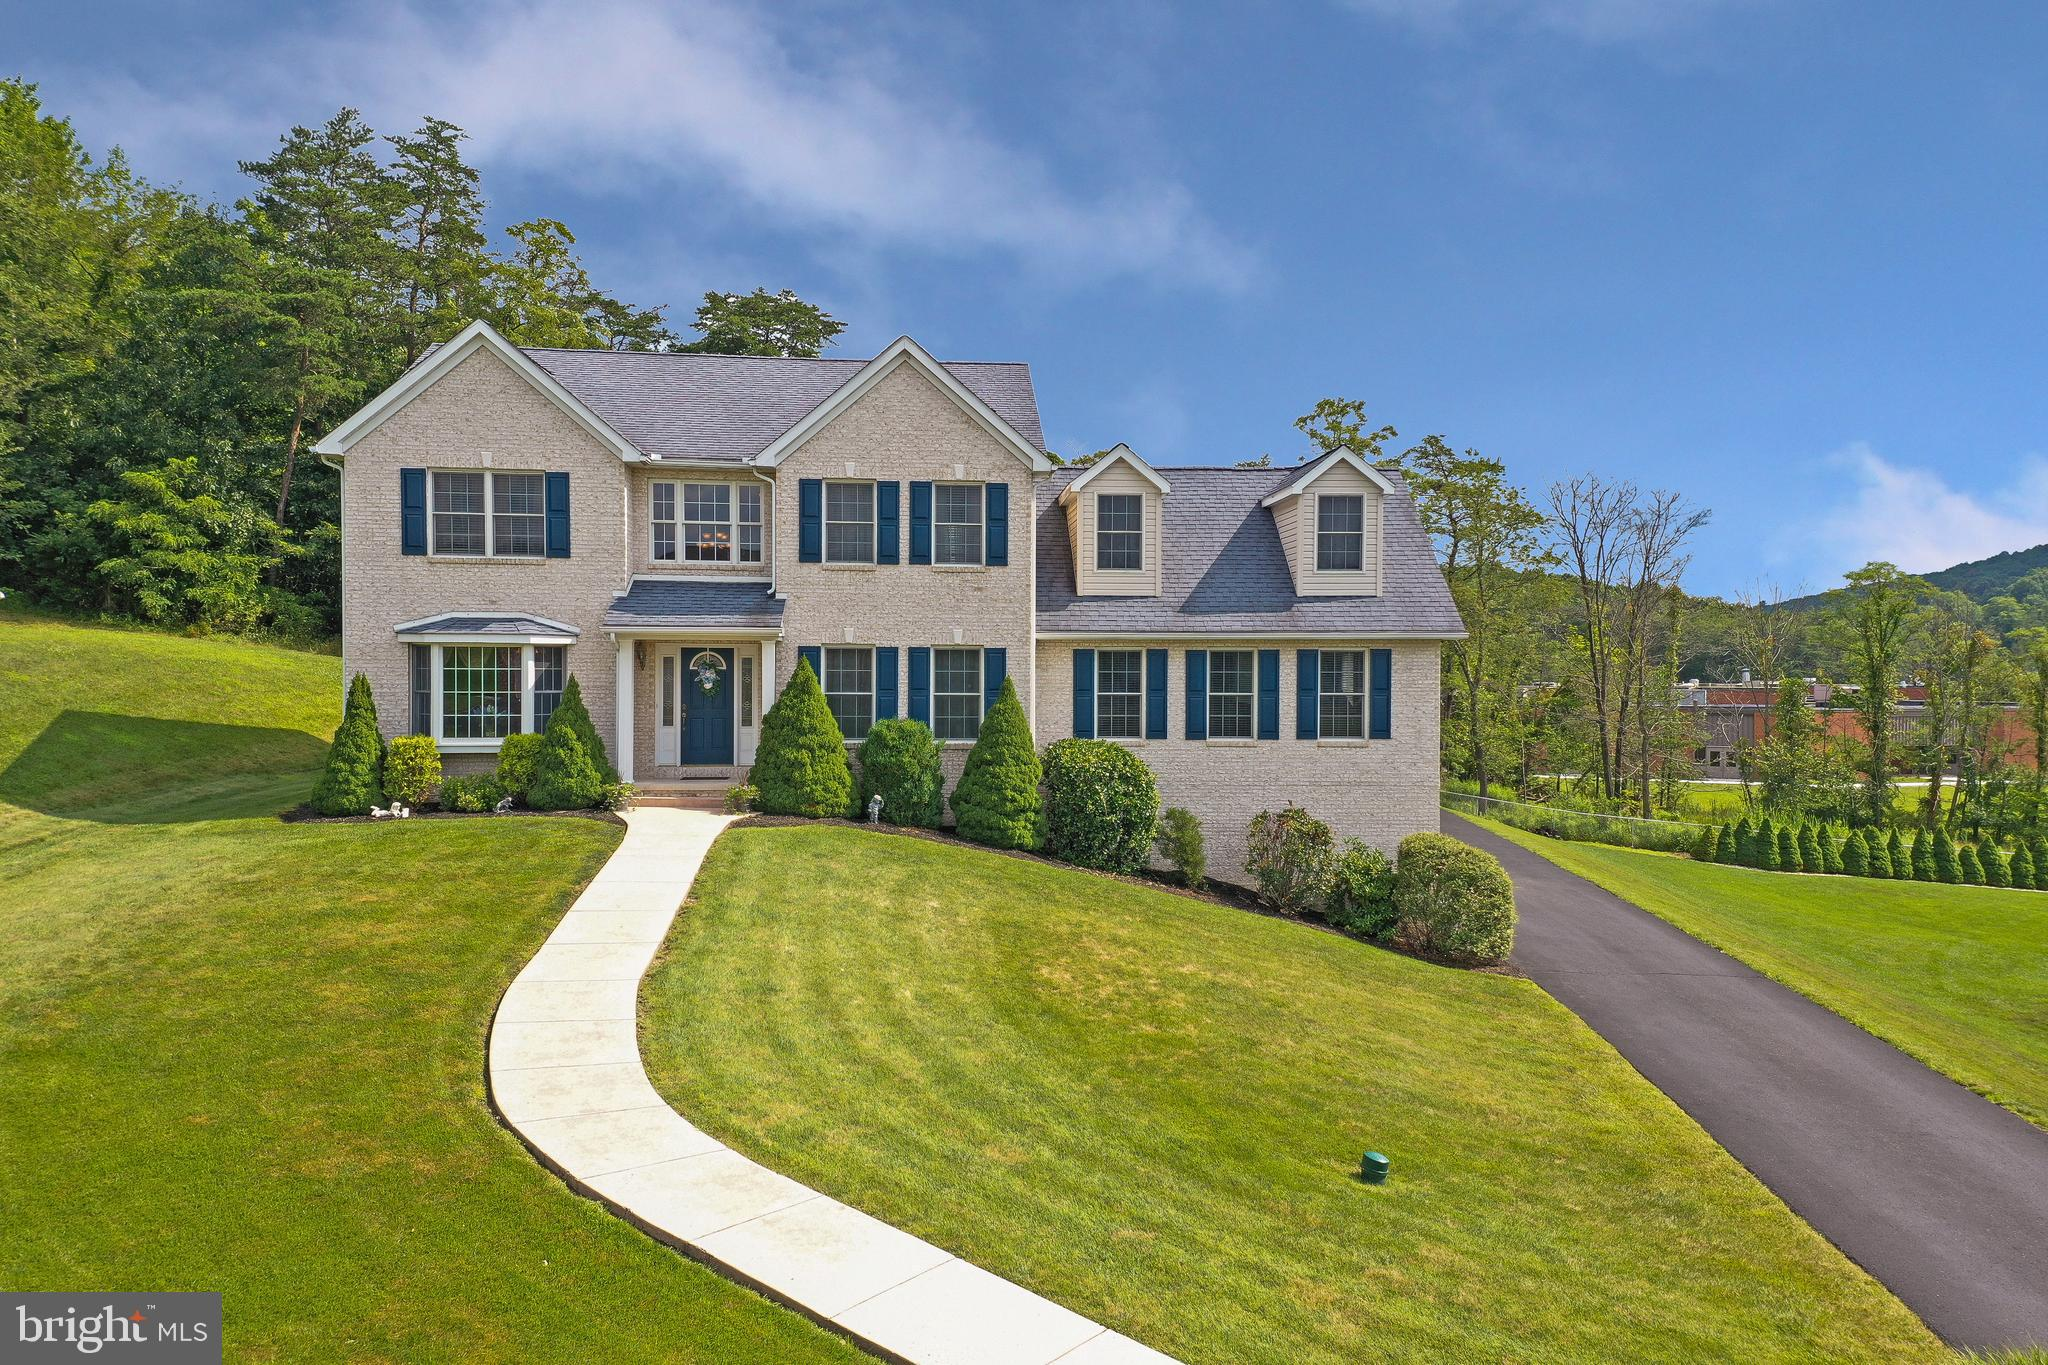 10606 PEARL VIEW PLACE, LAVALE, MD 21502